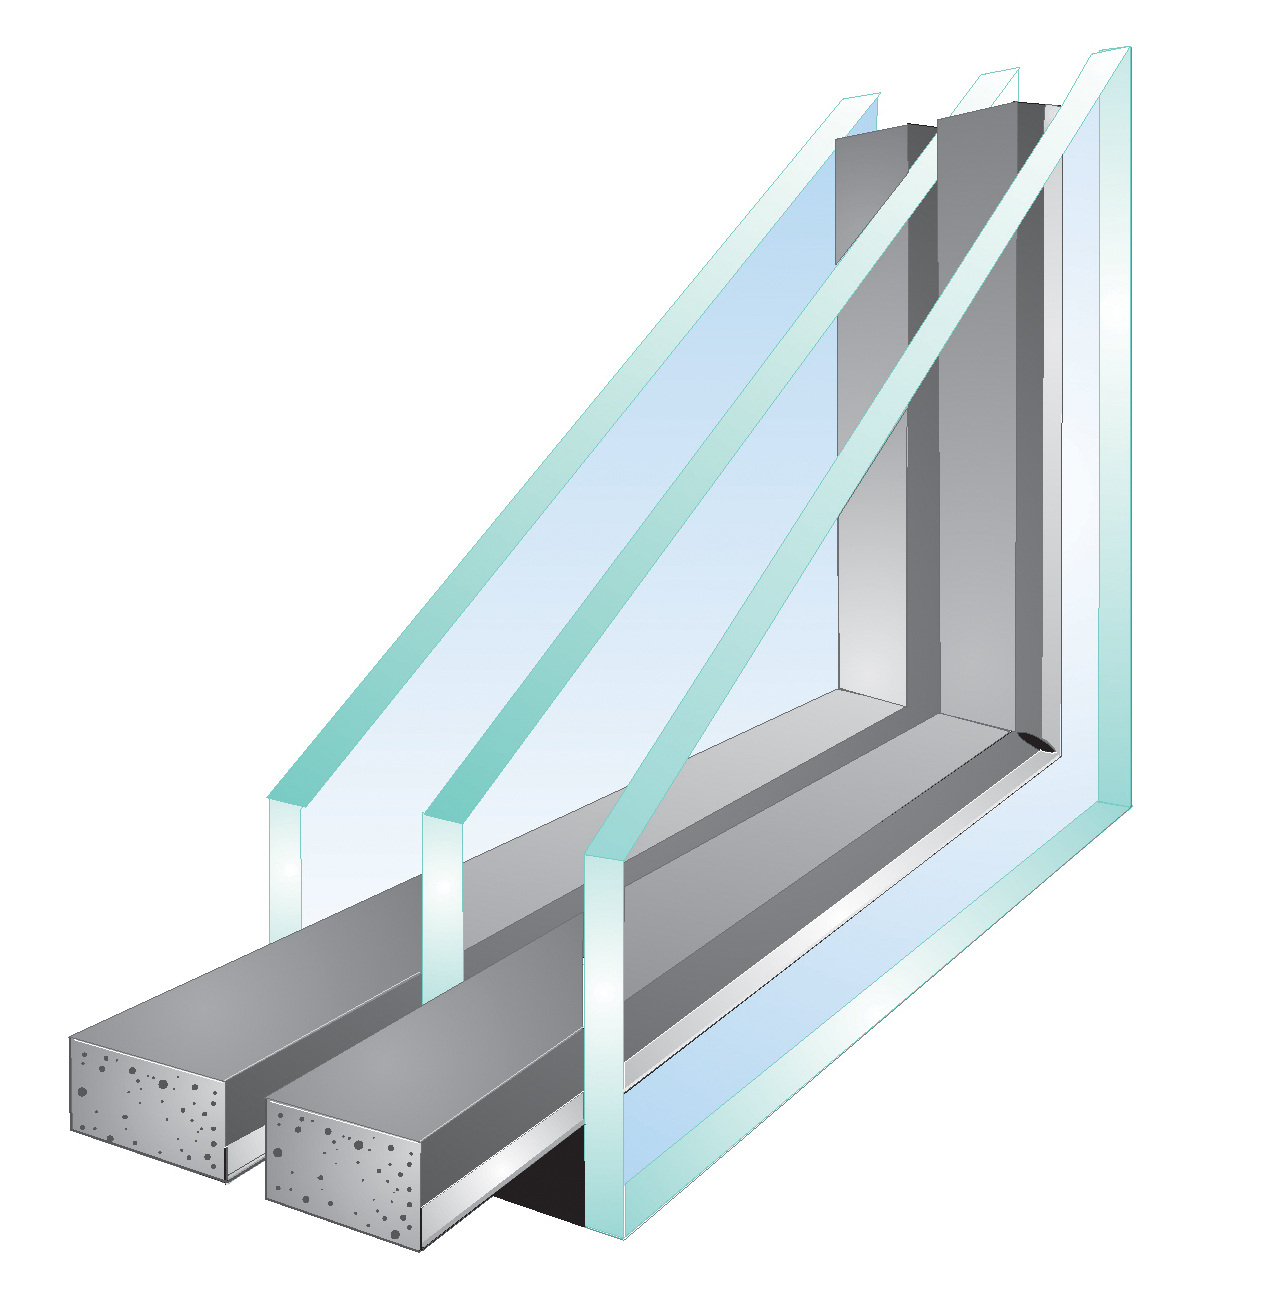 Santafeglass double pane vs triple pane windows for Fenetre isolante